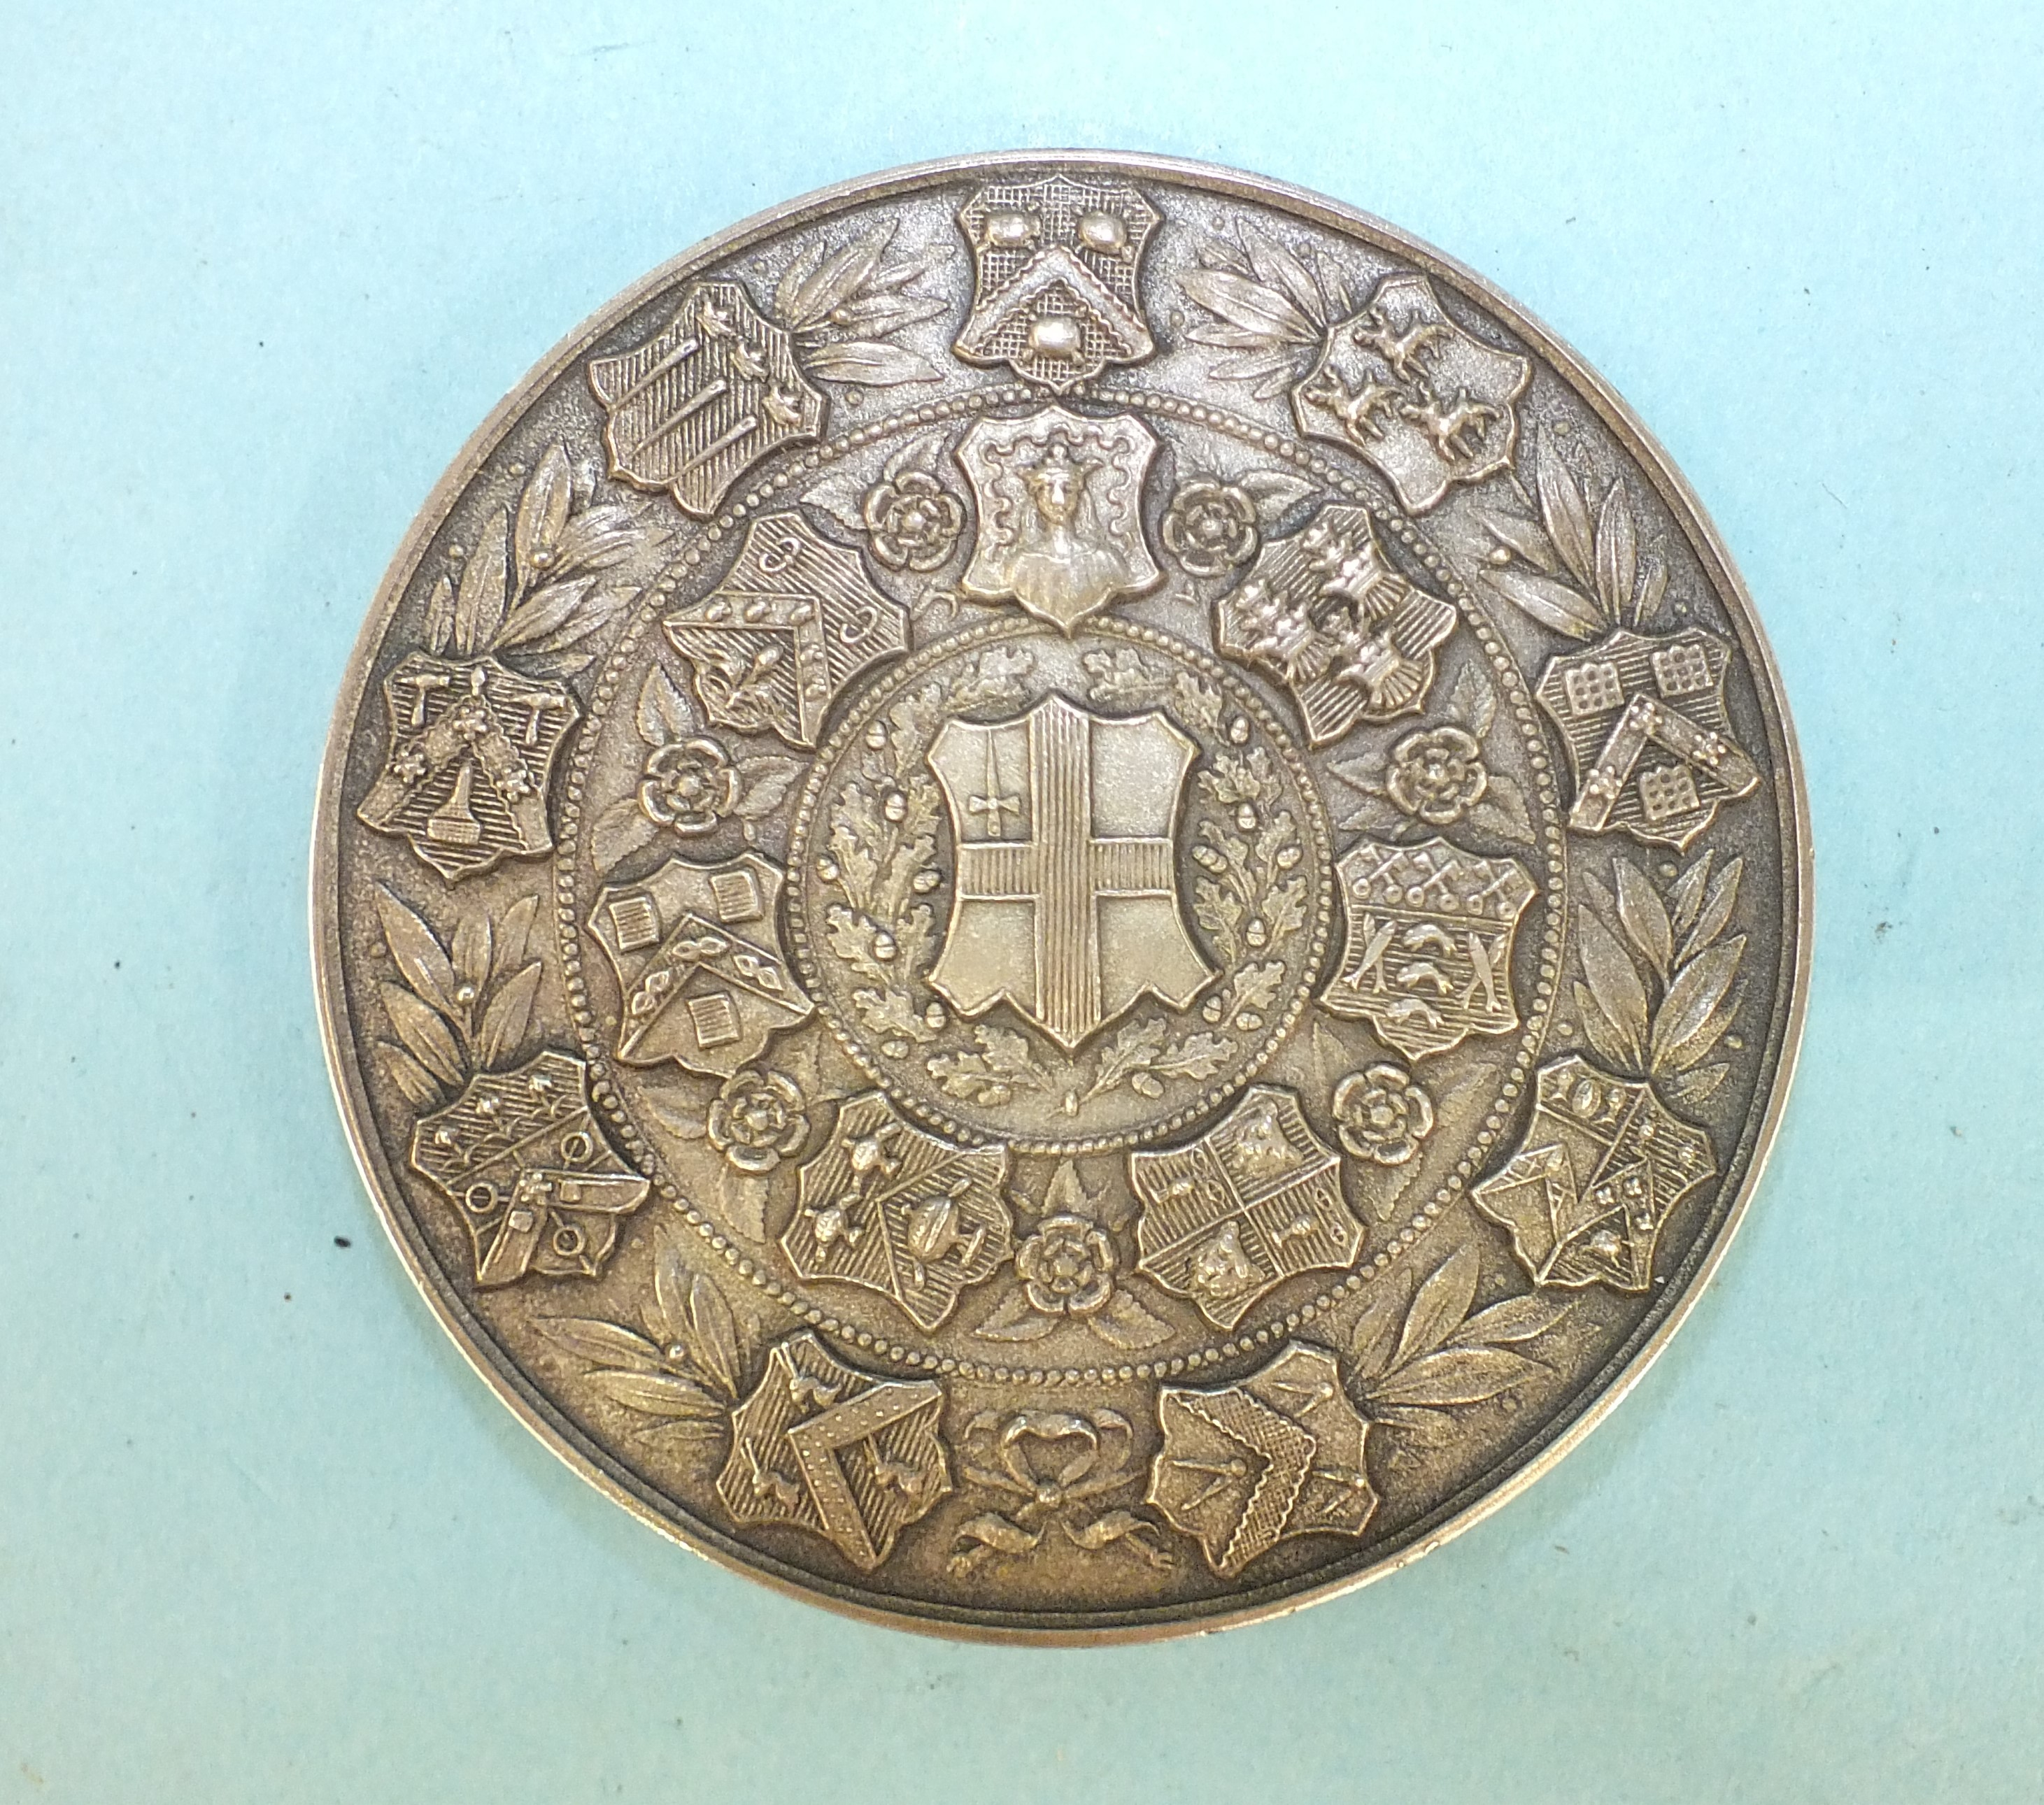 A WWI bronze death plaque awarded to Charles Simmons, a 1951 Technological Examination medallion and - Image 2 of 3